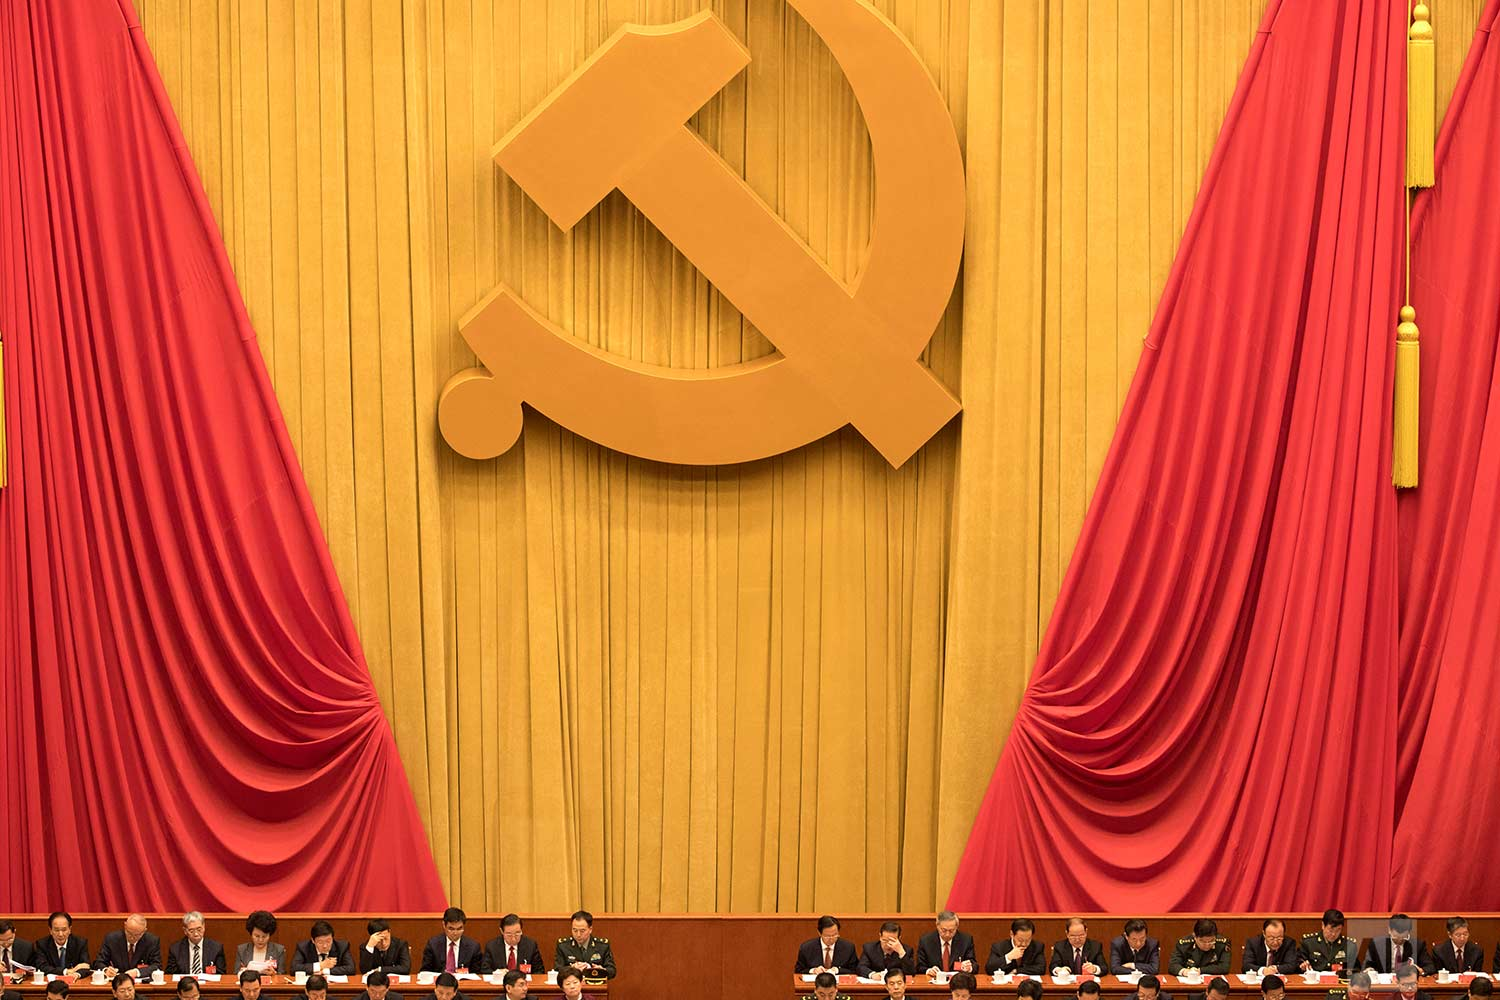 Chinese communists party cadres attend the opening ceremony of the 19th Party Congress held at the Great Hall of the People in Beijing, China, Wednesday, Oct. 18, 2017. (AP Photo/Ng Han Guan)